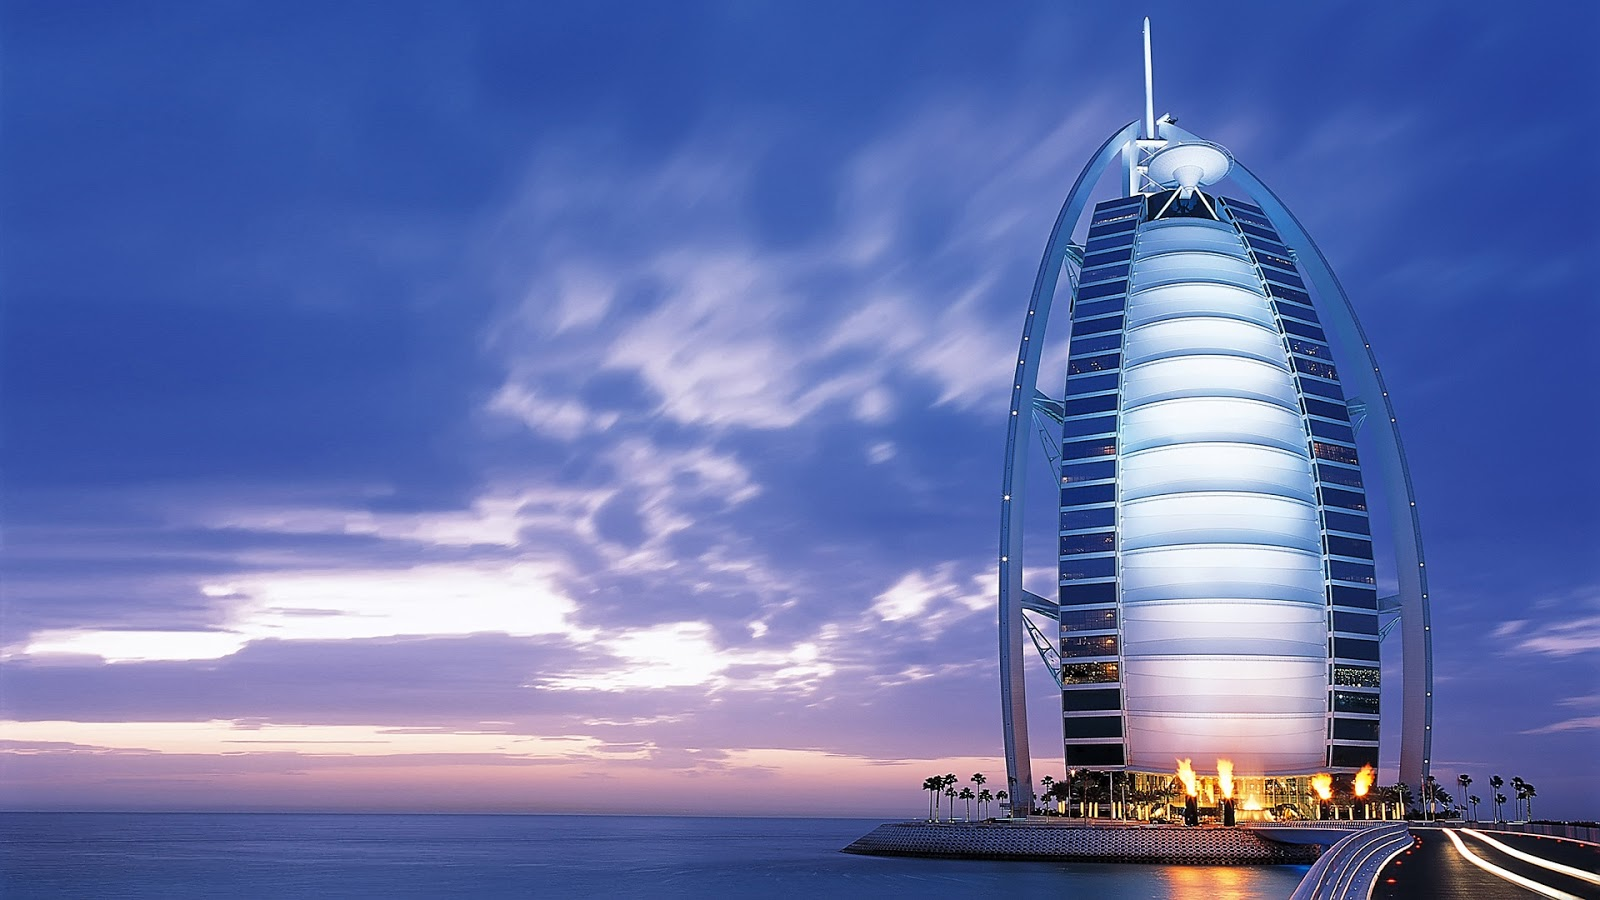 The Burj Al Arab is a hotel located